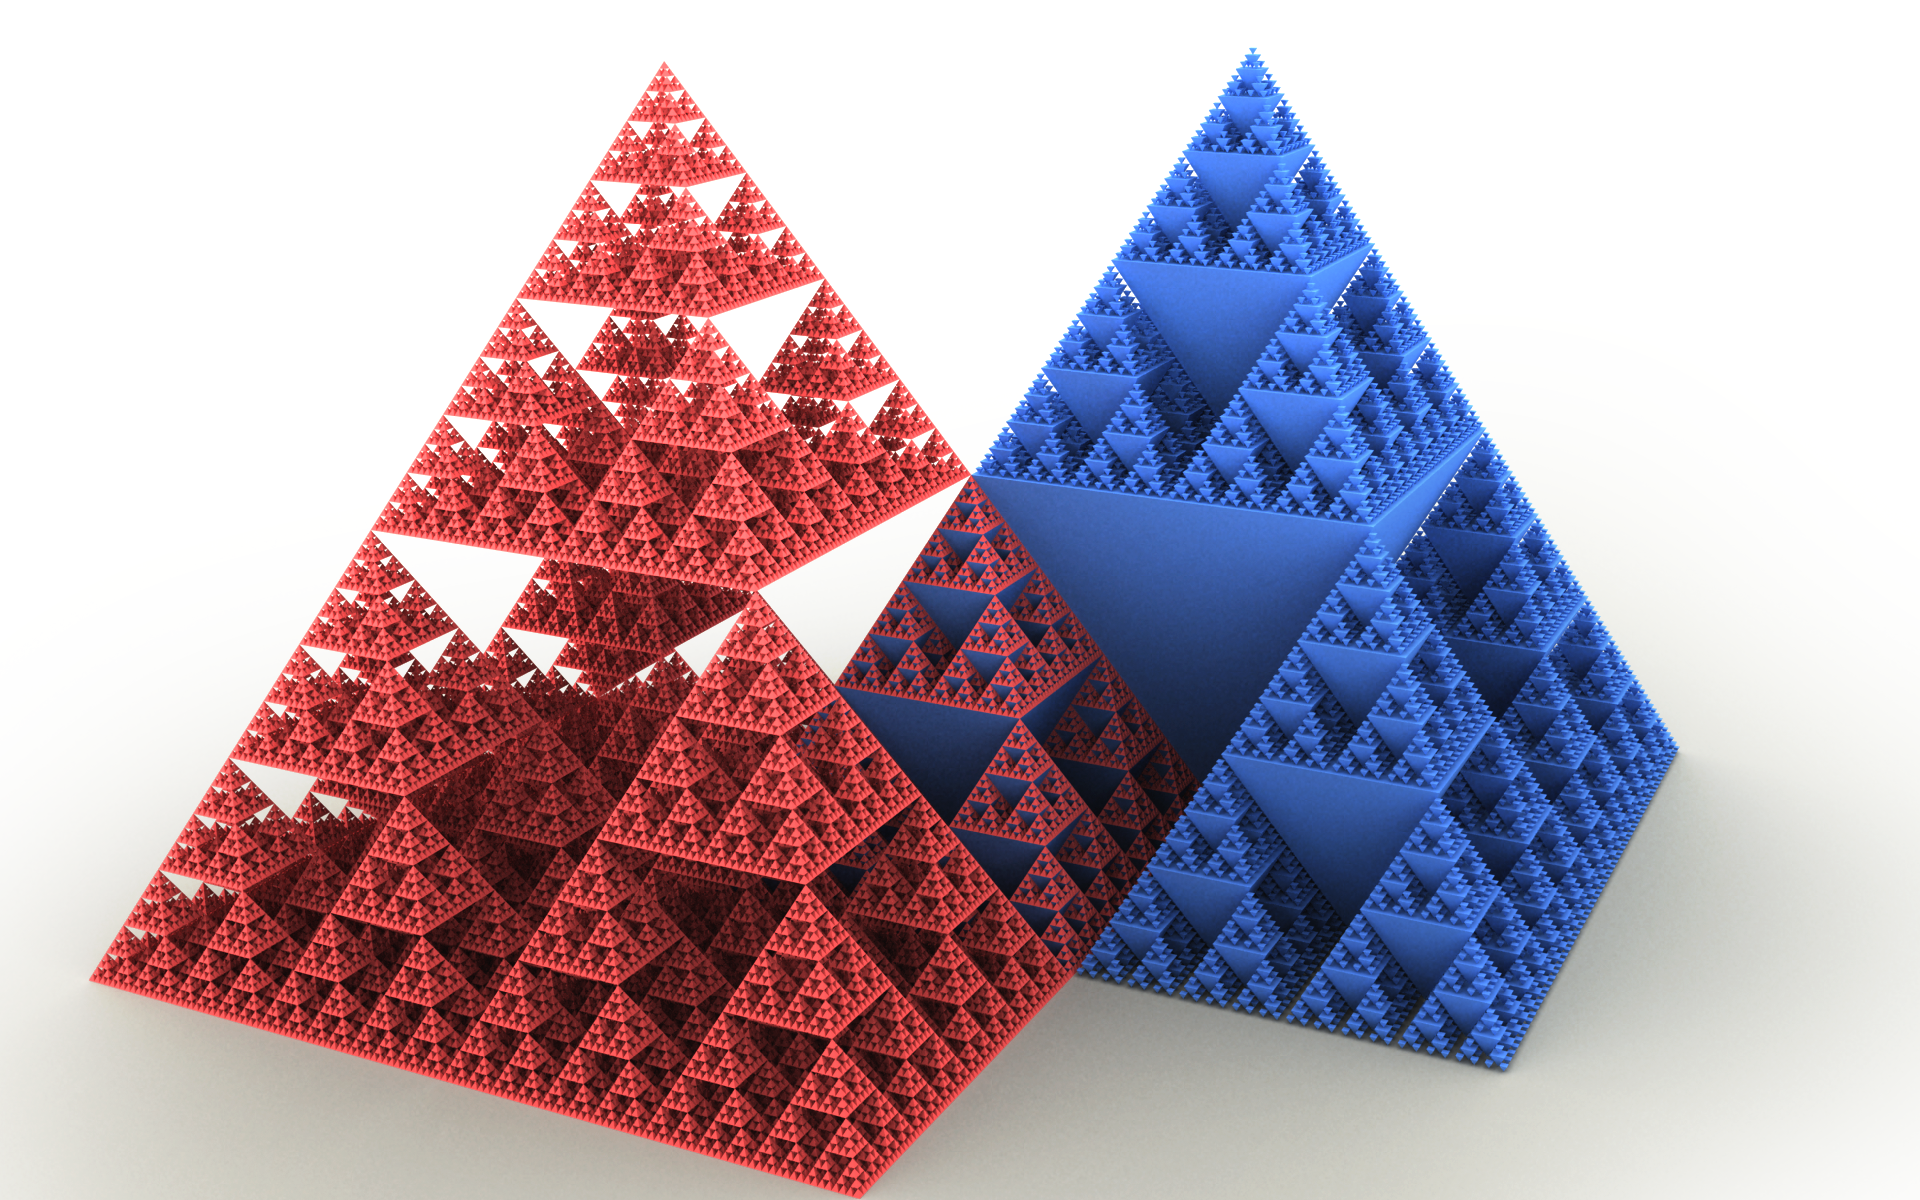 File:Sierpinski pyramid.png - Wikimedia Commons